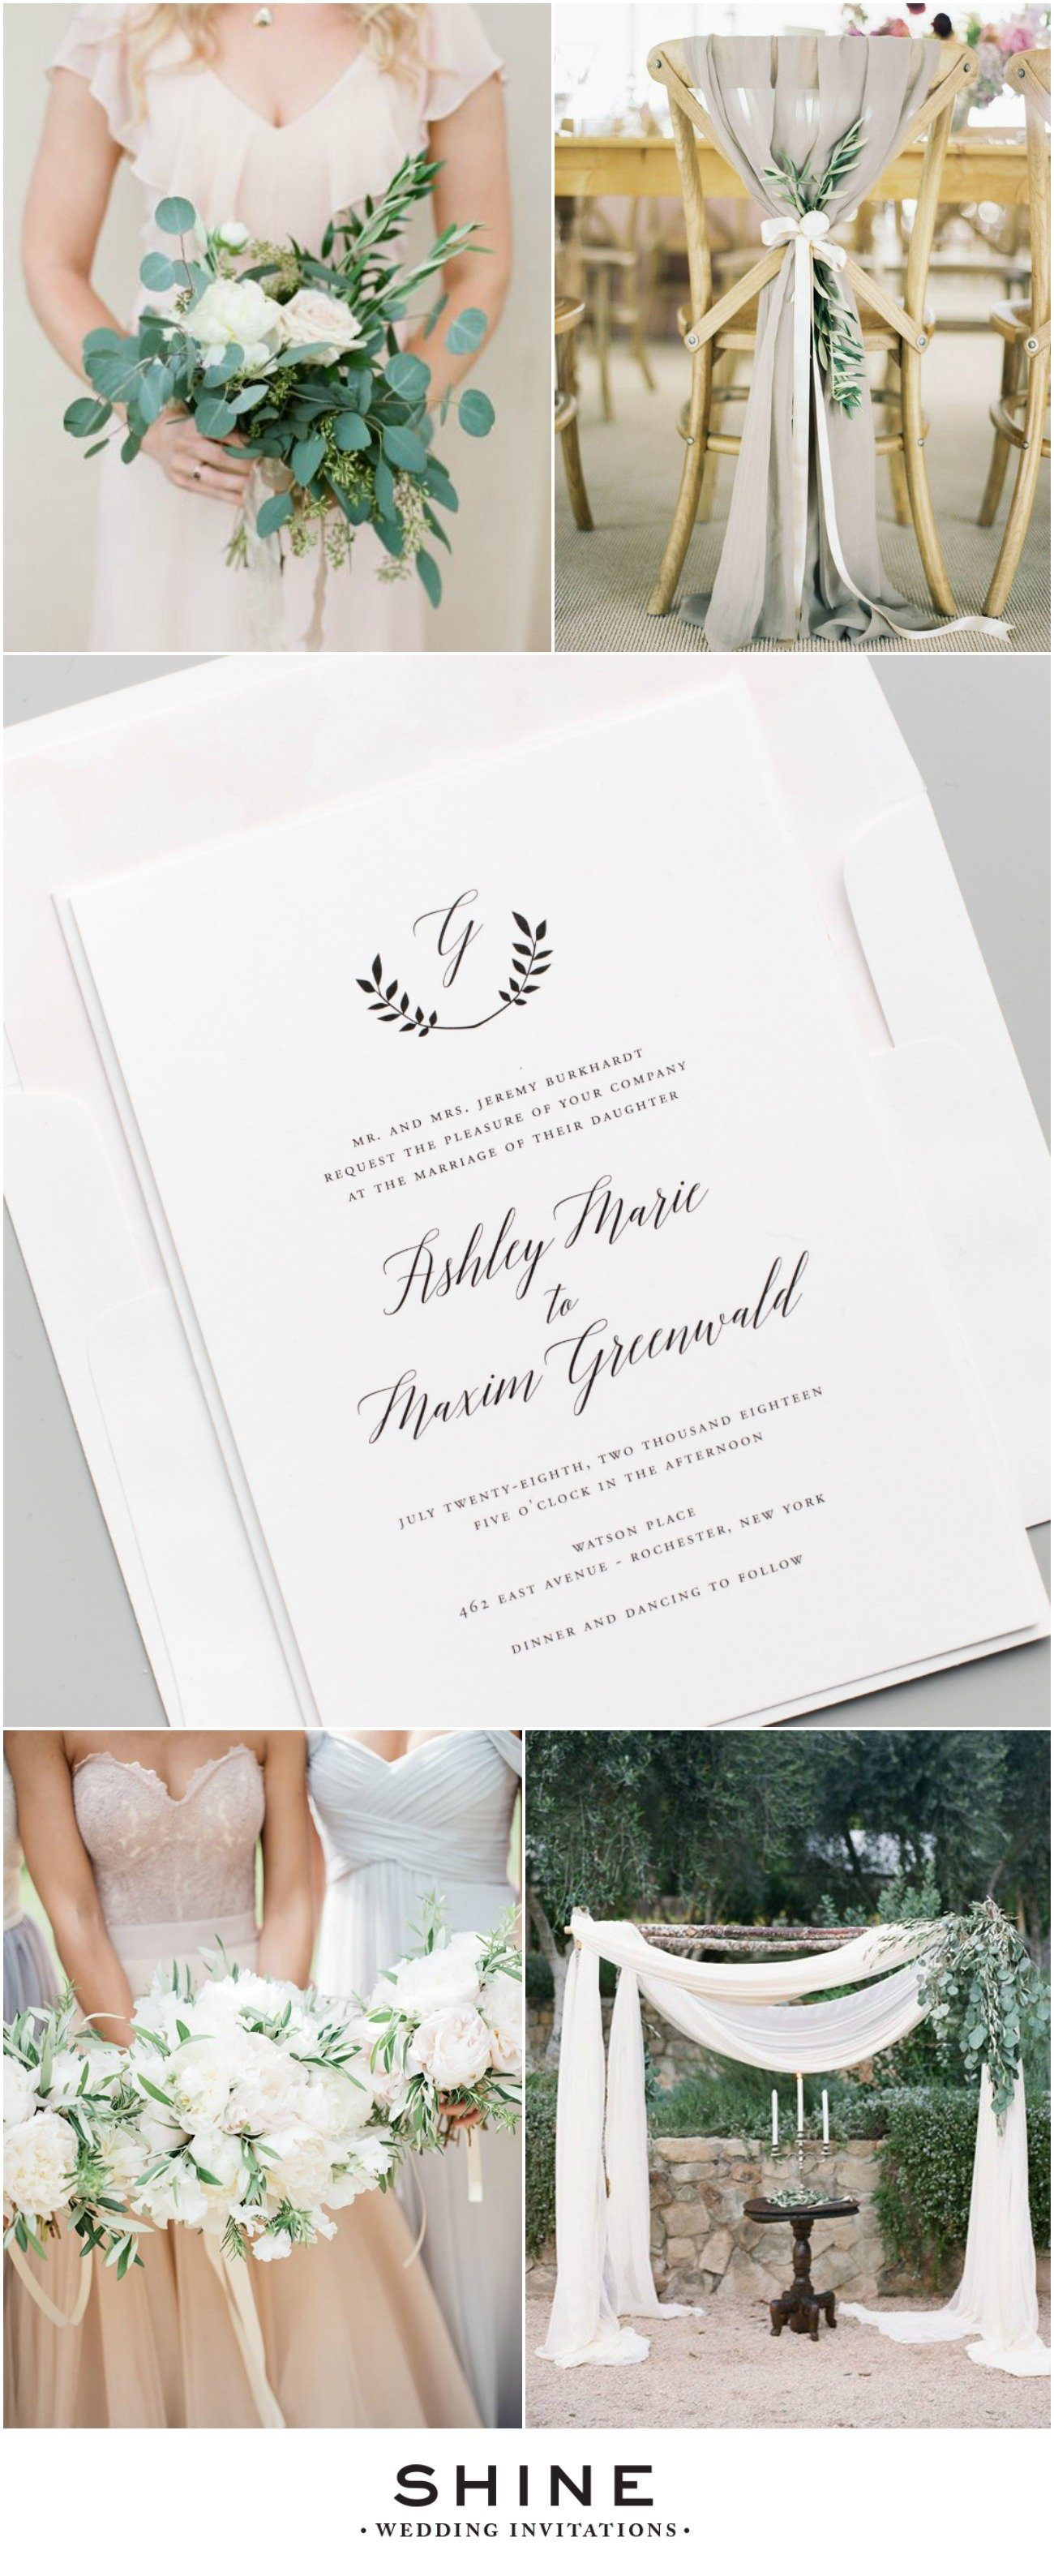 Olive Leaf Wedding Inspiration - Italian Wedding Inspiration